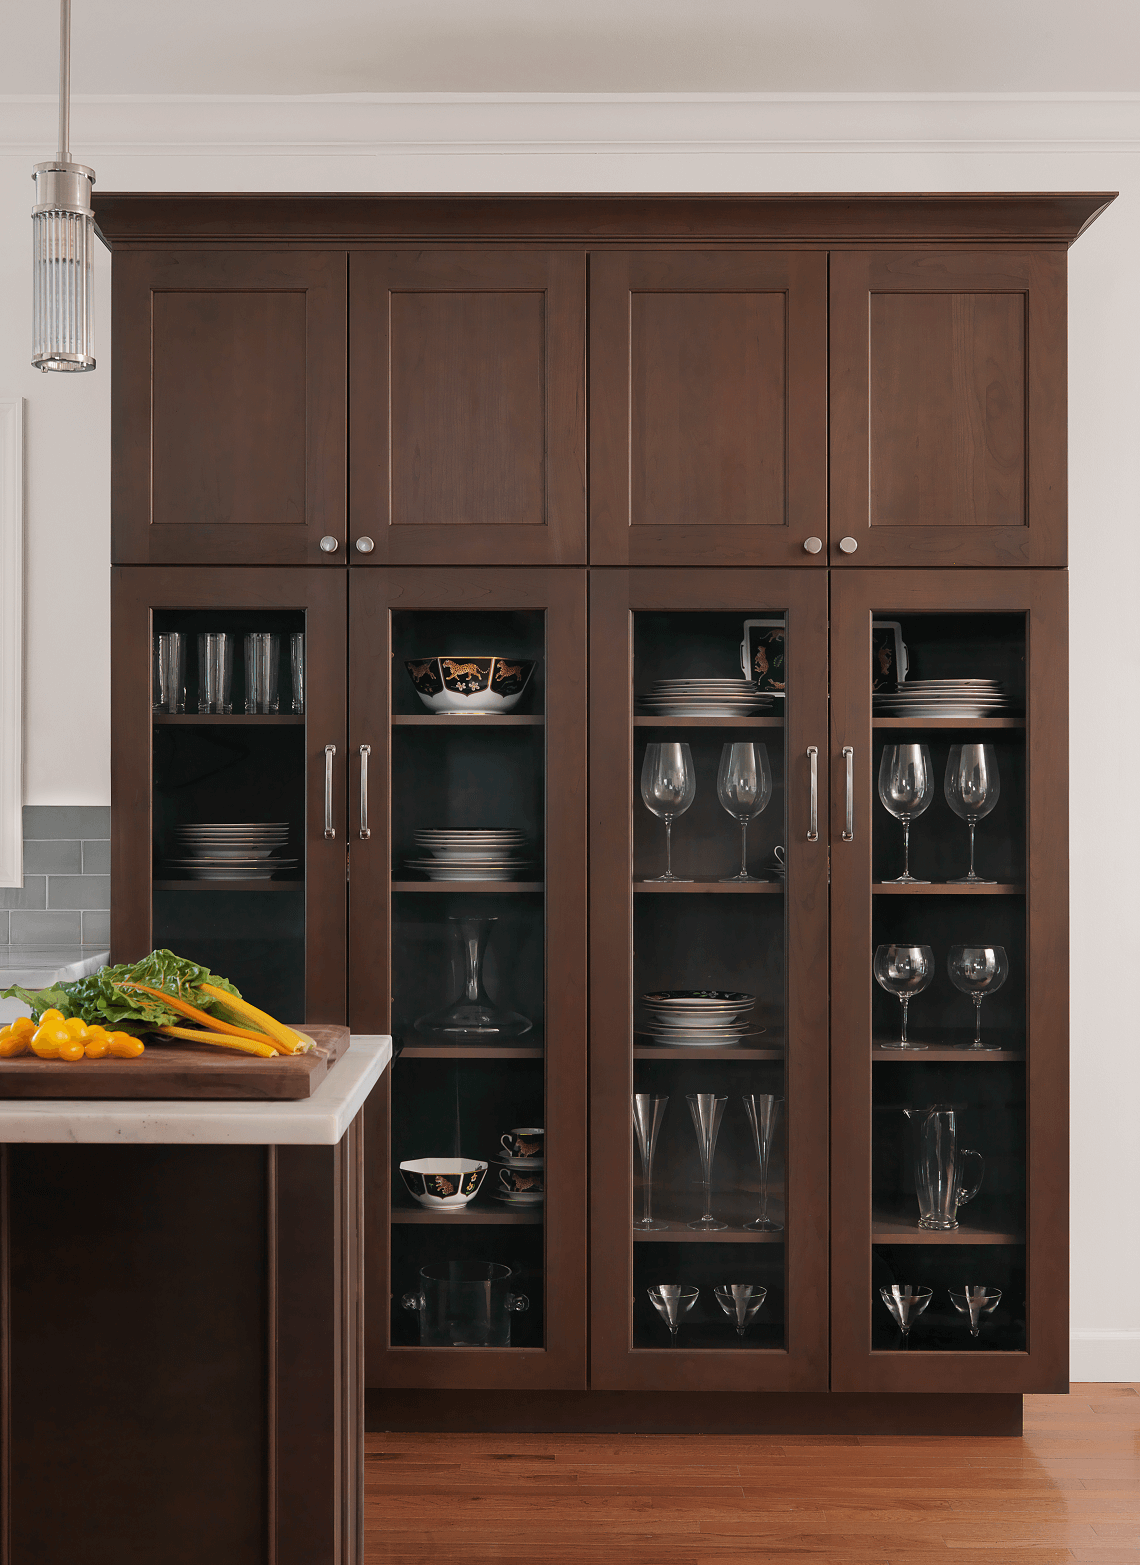 kitchen cabinet display custom kitchen display cabinets beck allen cabinetry 2474